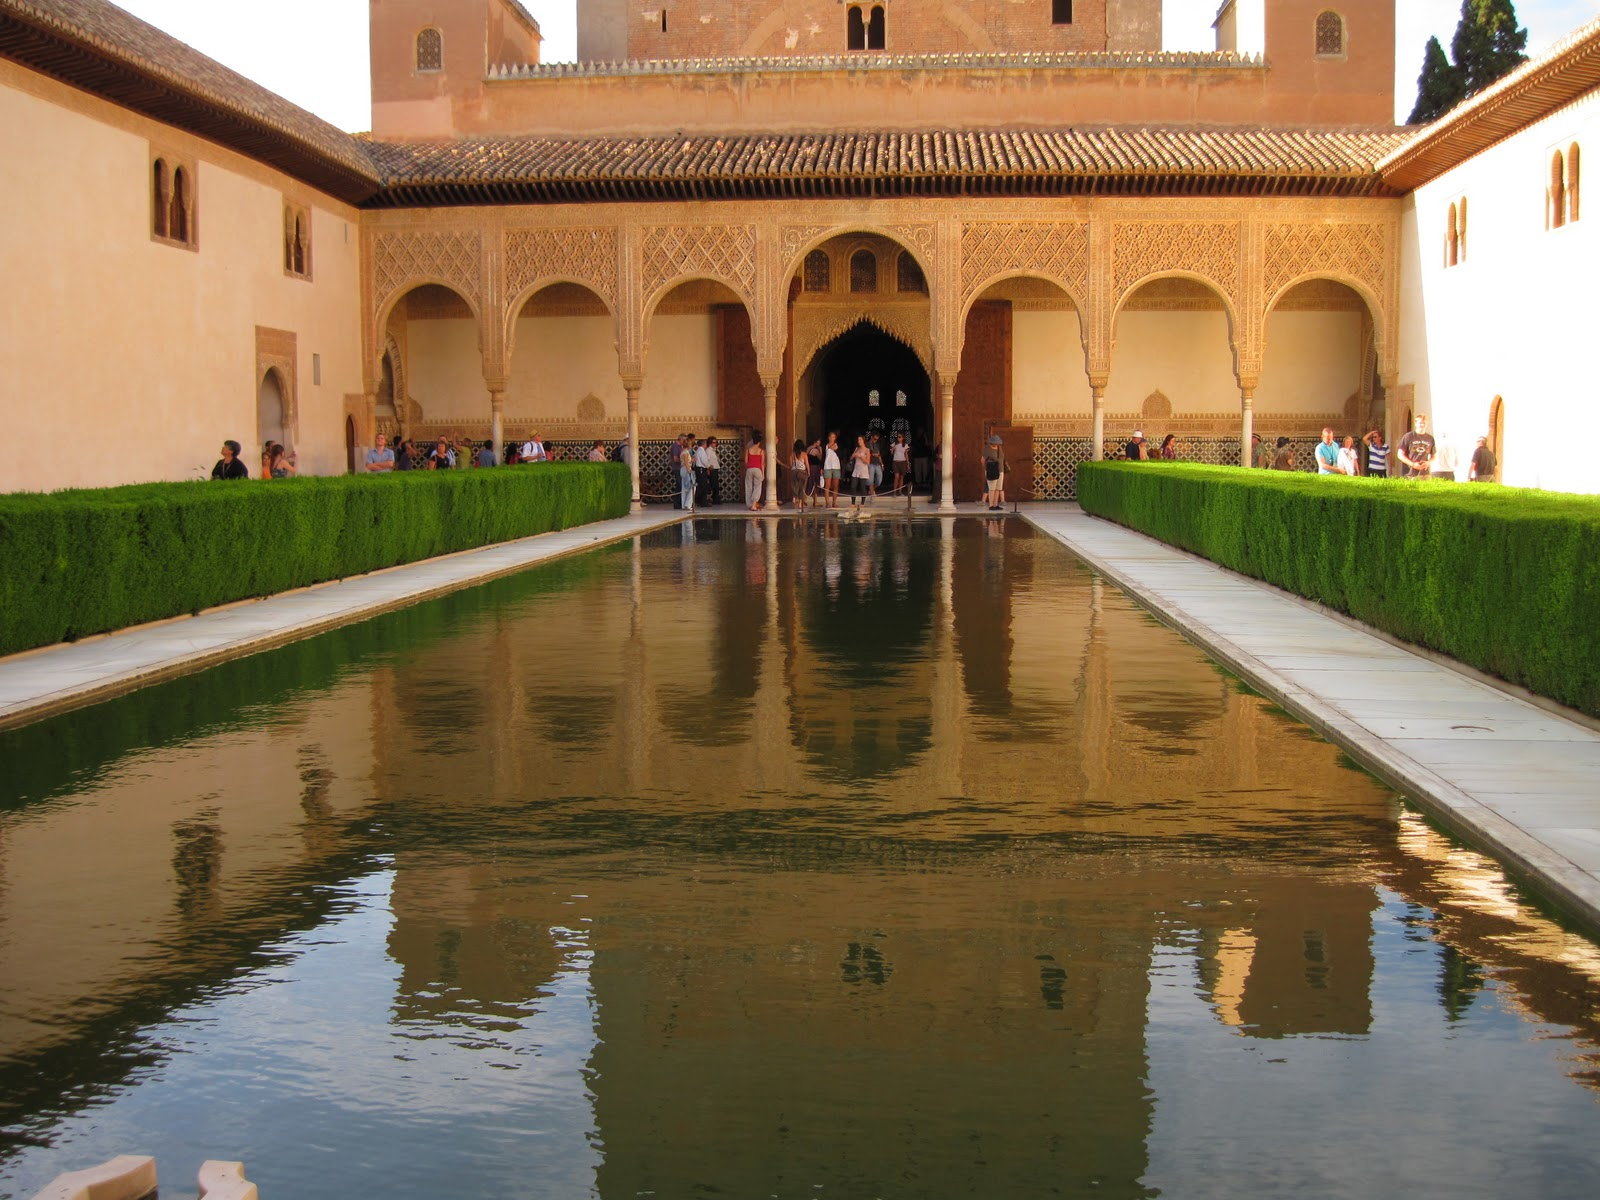 Granada, Spain, Alhambra interior garden with visitors